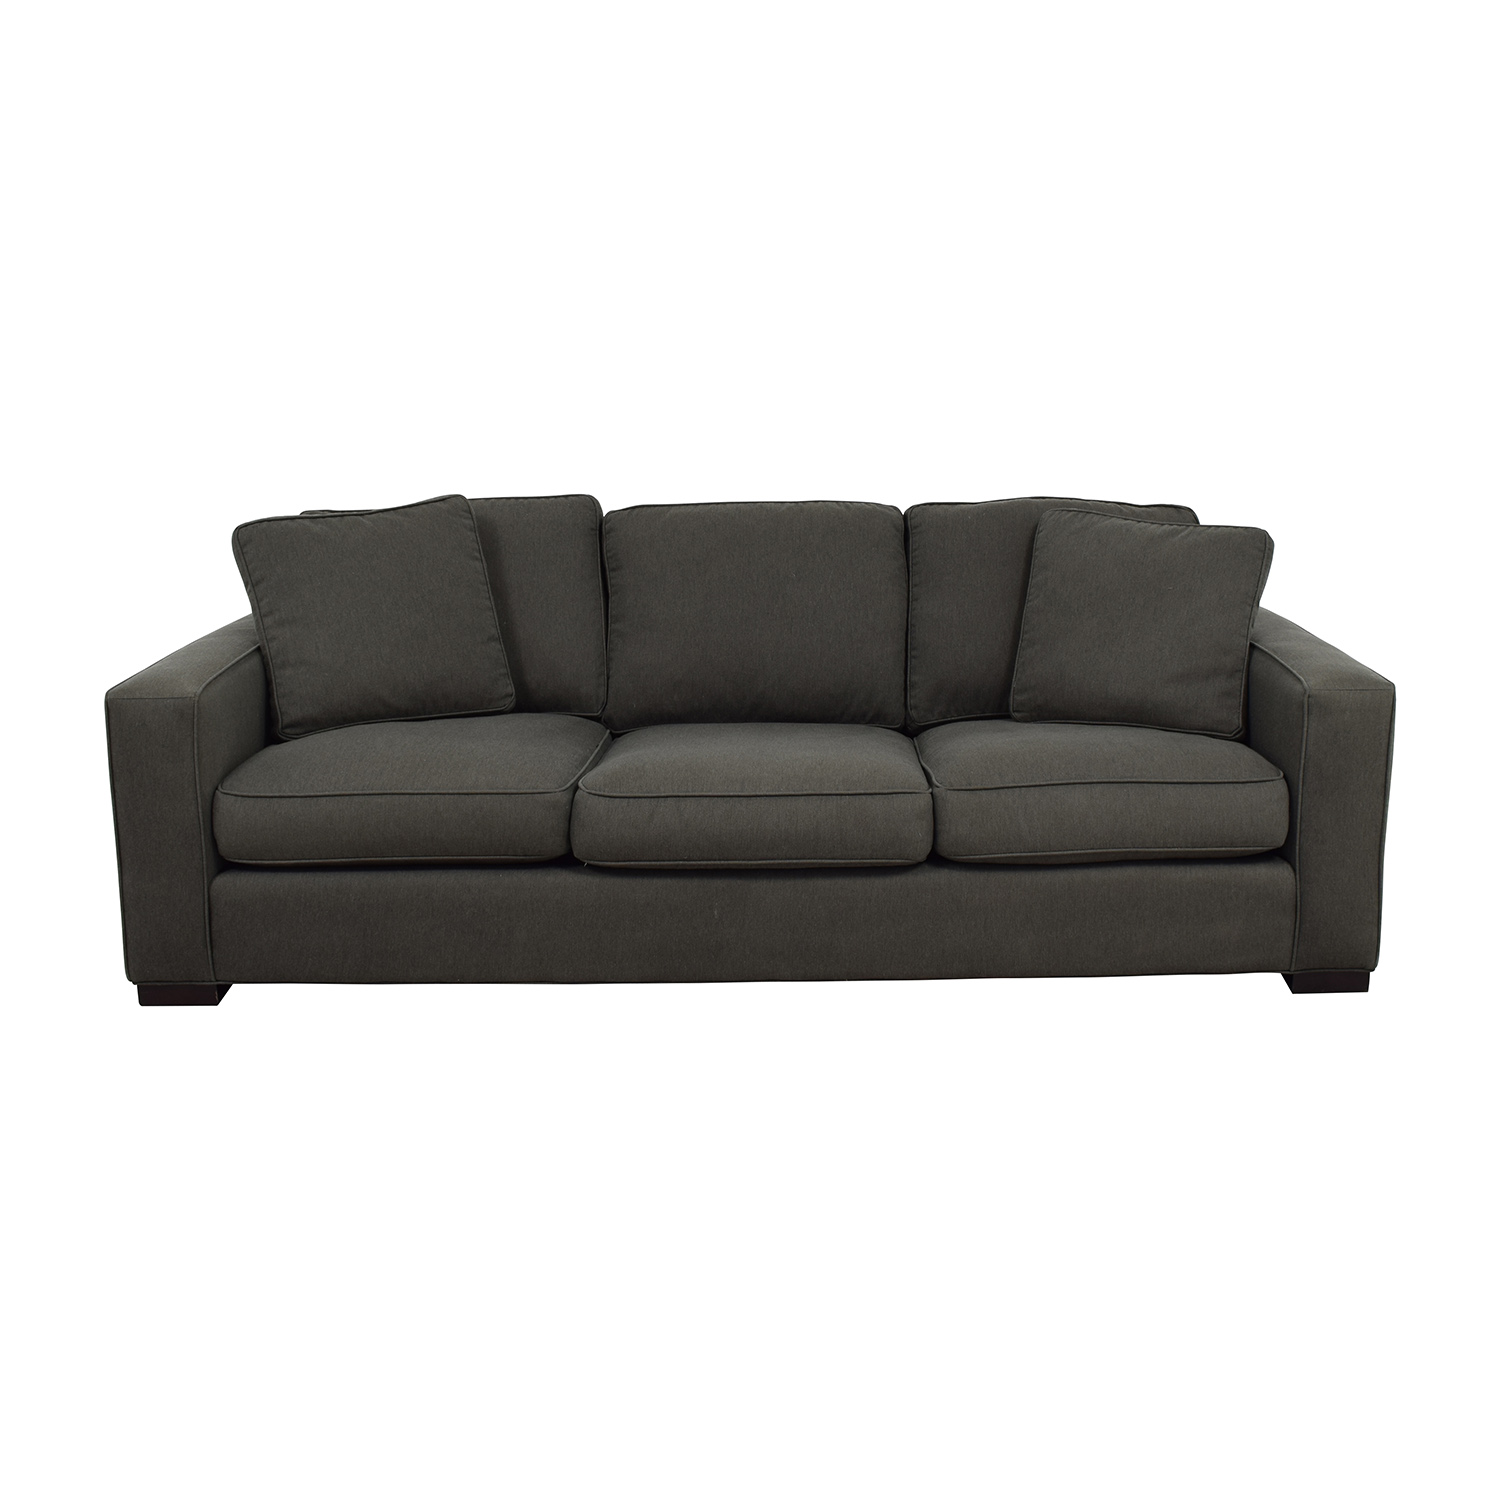 49% OFF - Room & Board Room & Board Metro Sofa in Charcoal / Sofas